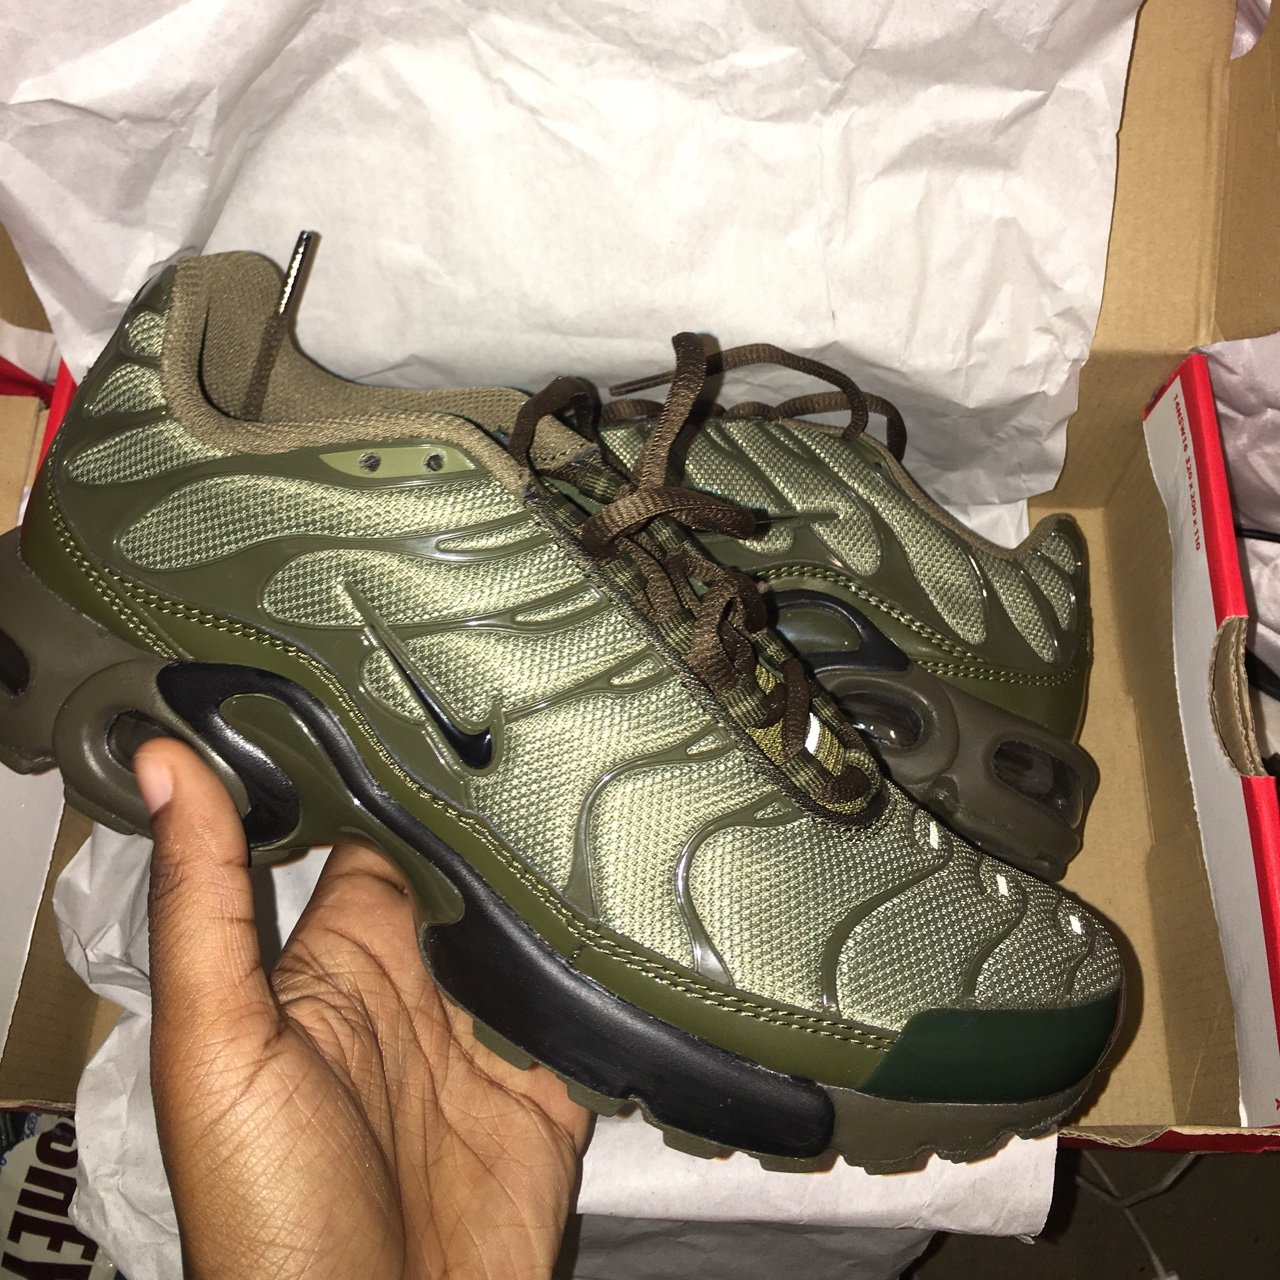 factory price 5bf7a c84f1 BRAND NEW NIKE LIMITED EDITION TNs SIZE 6 - KHAKI GREEN.  TN - Depop